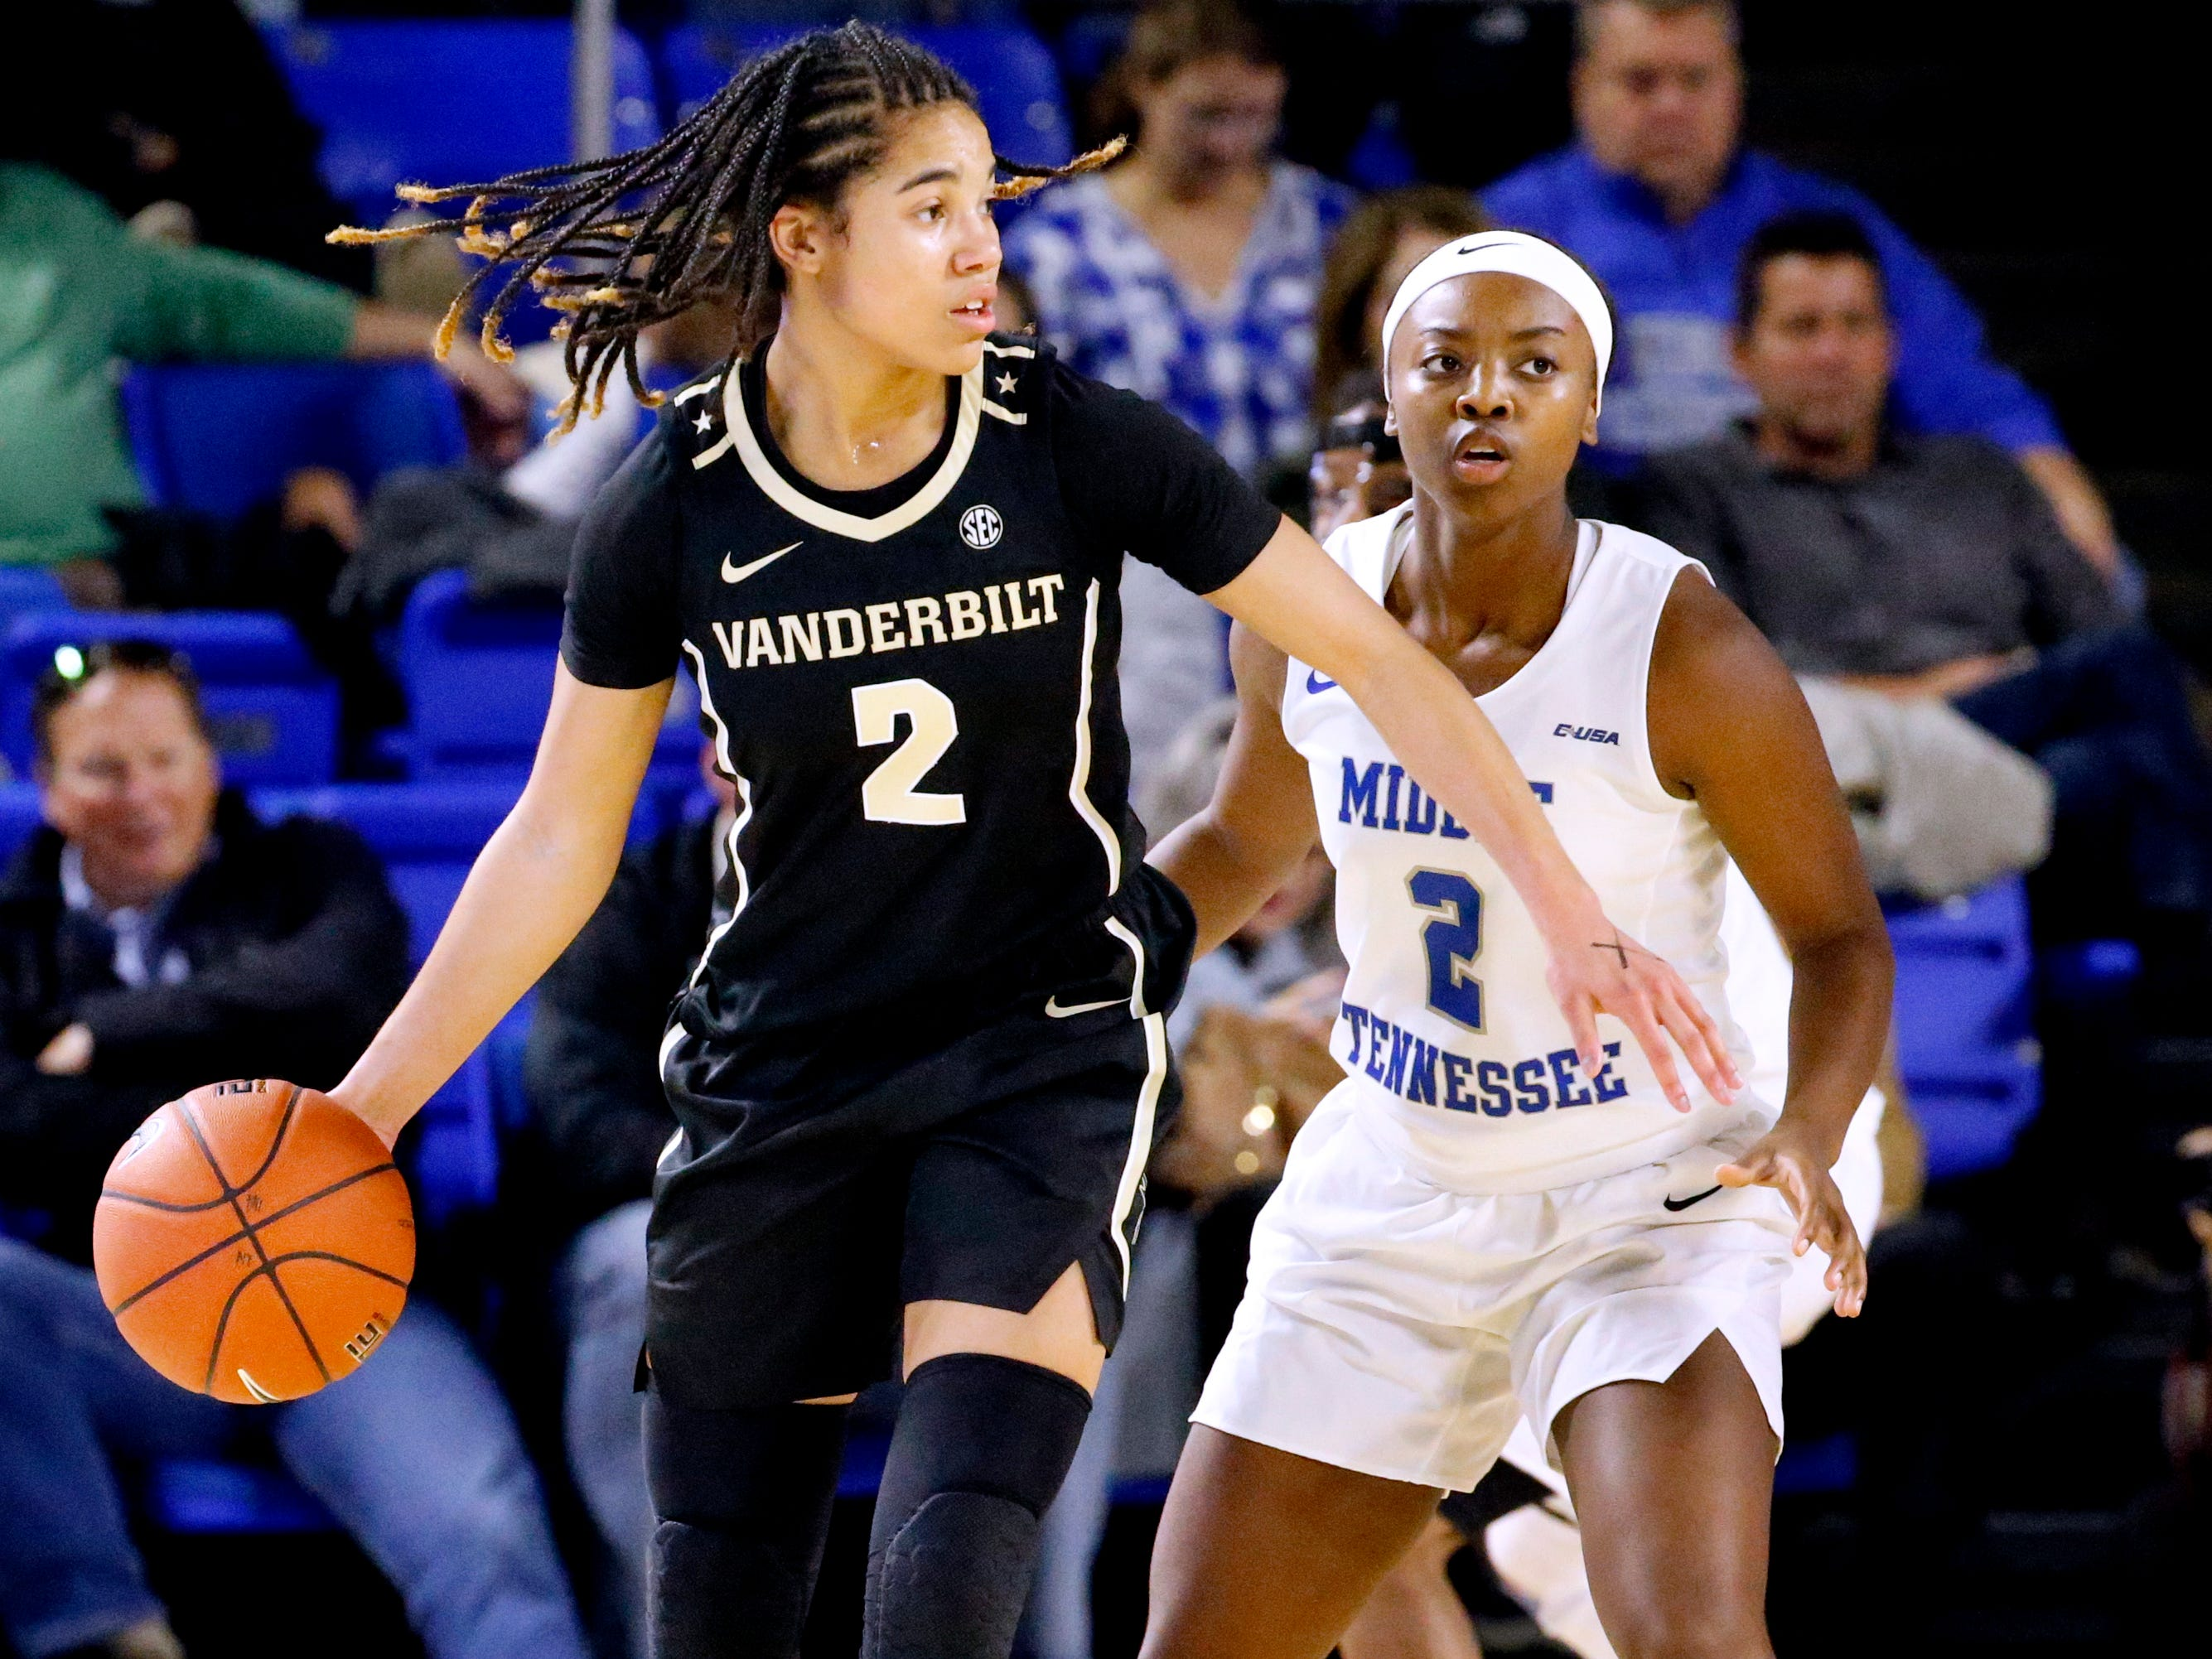 Vanderbilt's Chelsie Hall (2) looks for an open player to pass to as MTSU's Taylor Sutton (2) stands behind her during the MTSU women's home opening game at MTSU on Friday, Nov. 8, 2018.